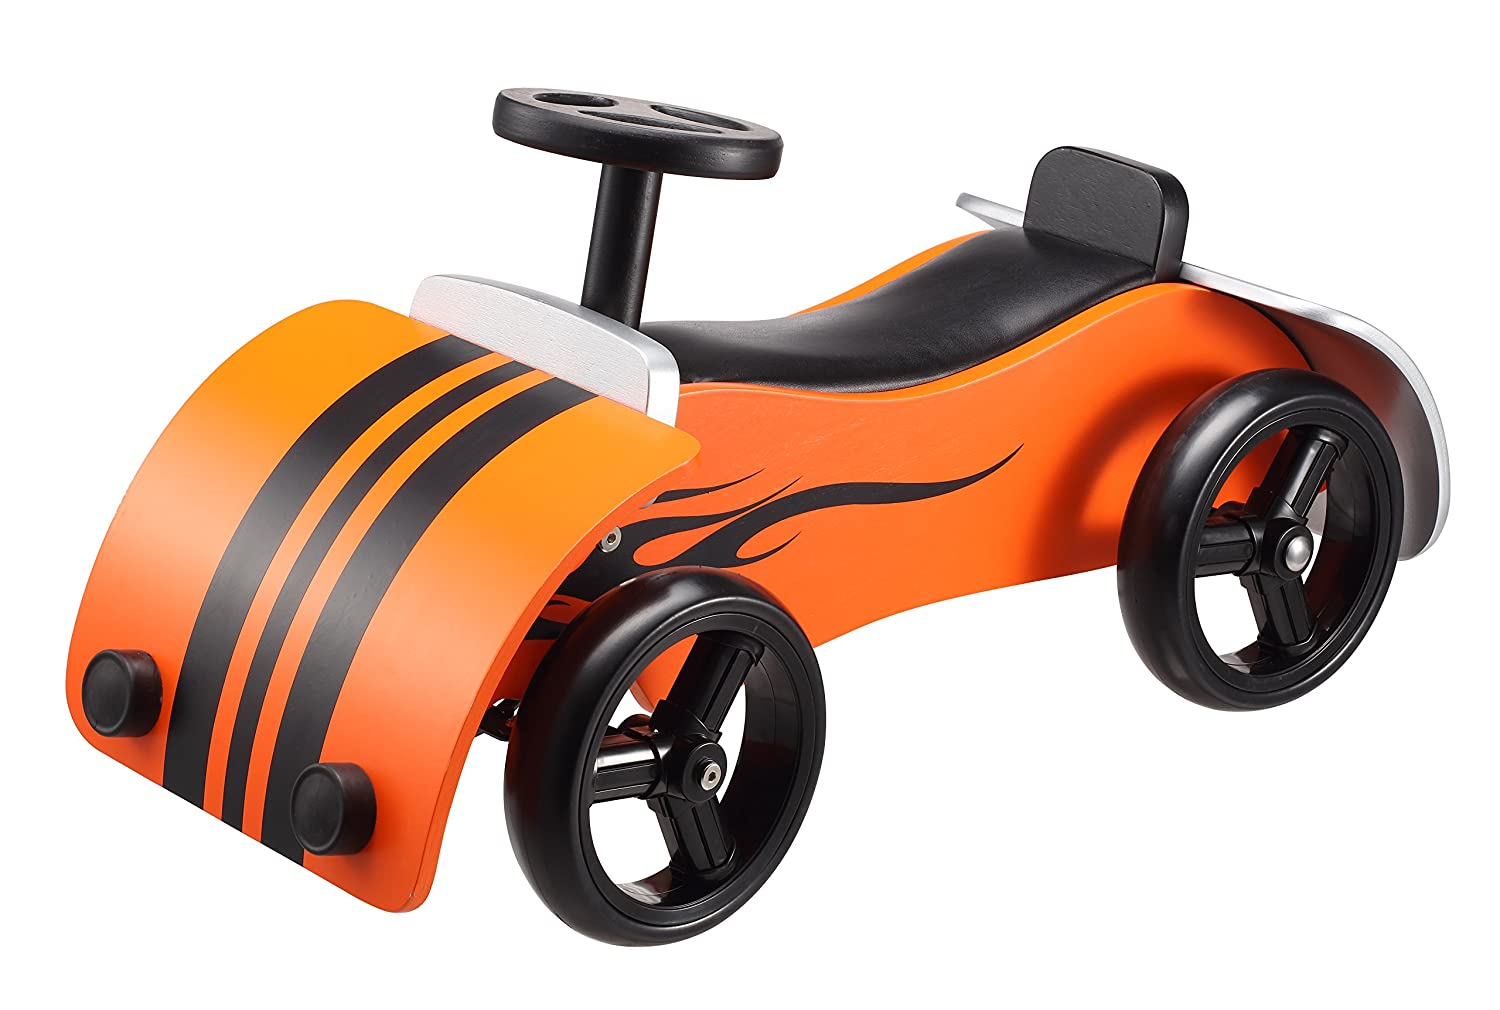 Rutschauto Holz - BIKESTAR Kinder Rutscher Orange